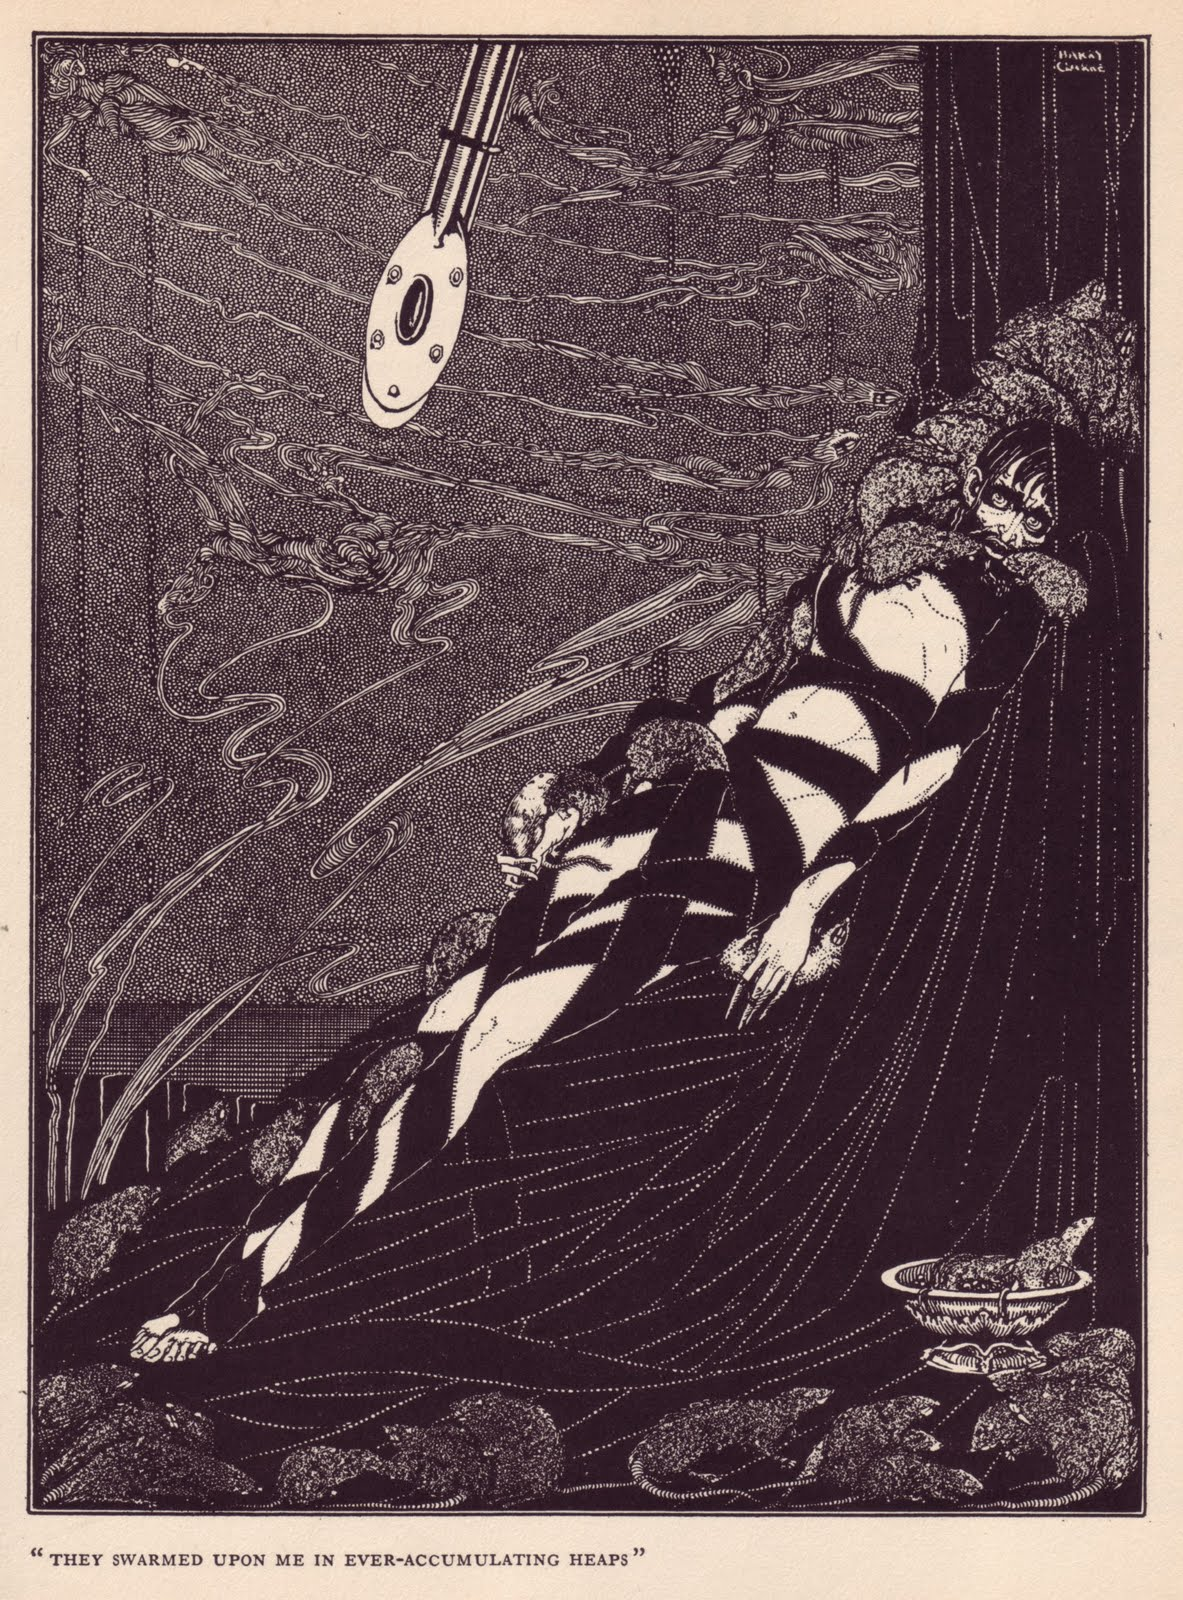 The Pit and the Pendulum (Harry Clarke)